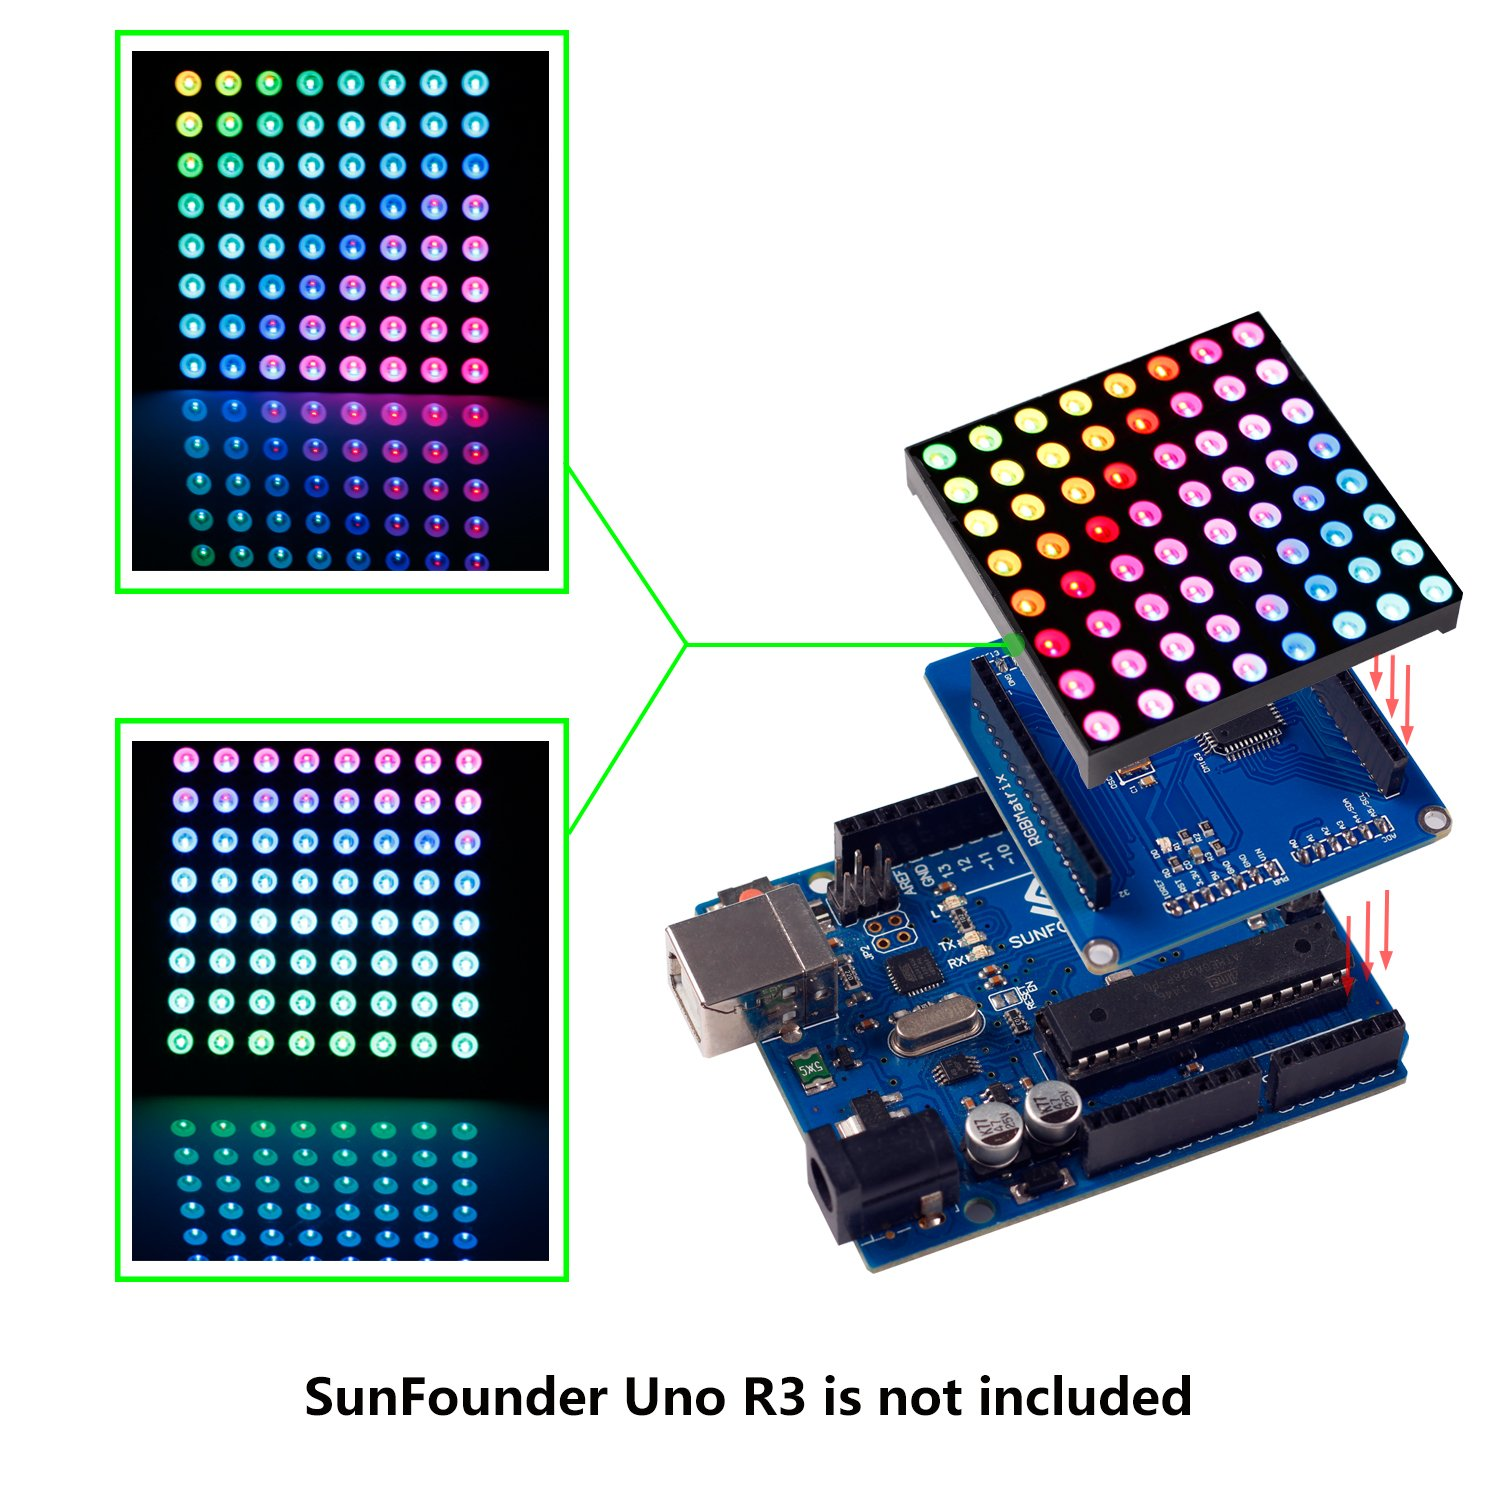 Tri Color Led Circuit 8x8 Full Sunfounder Rgb Matrix Driver Shield Screen For Arduino Computers Accessories